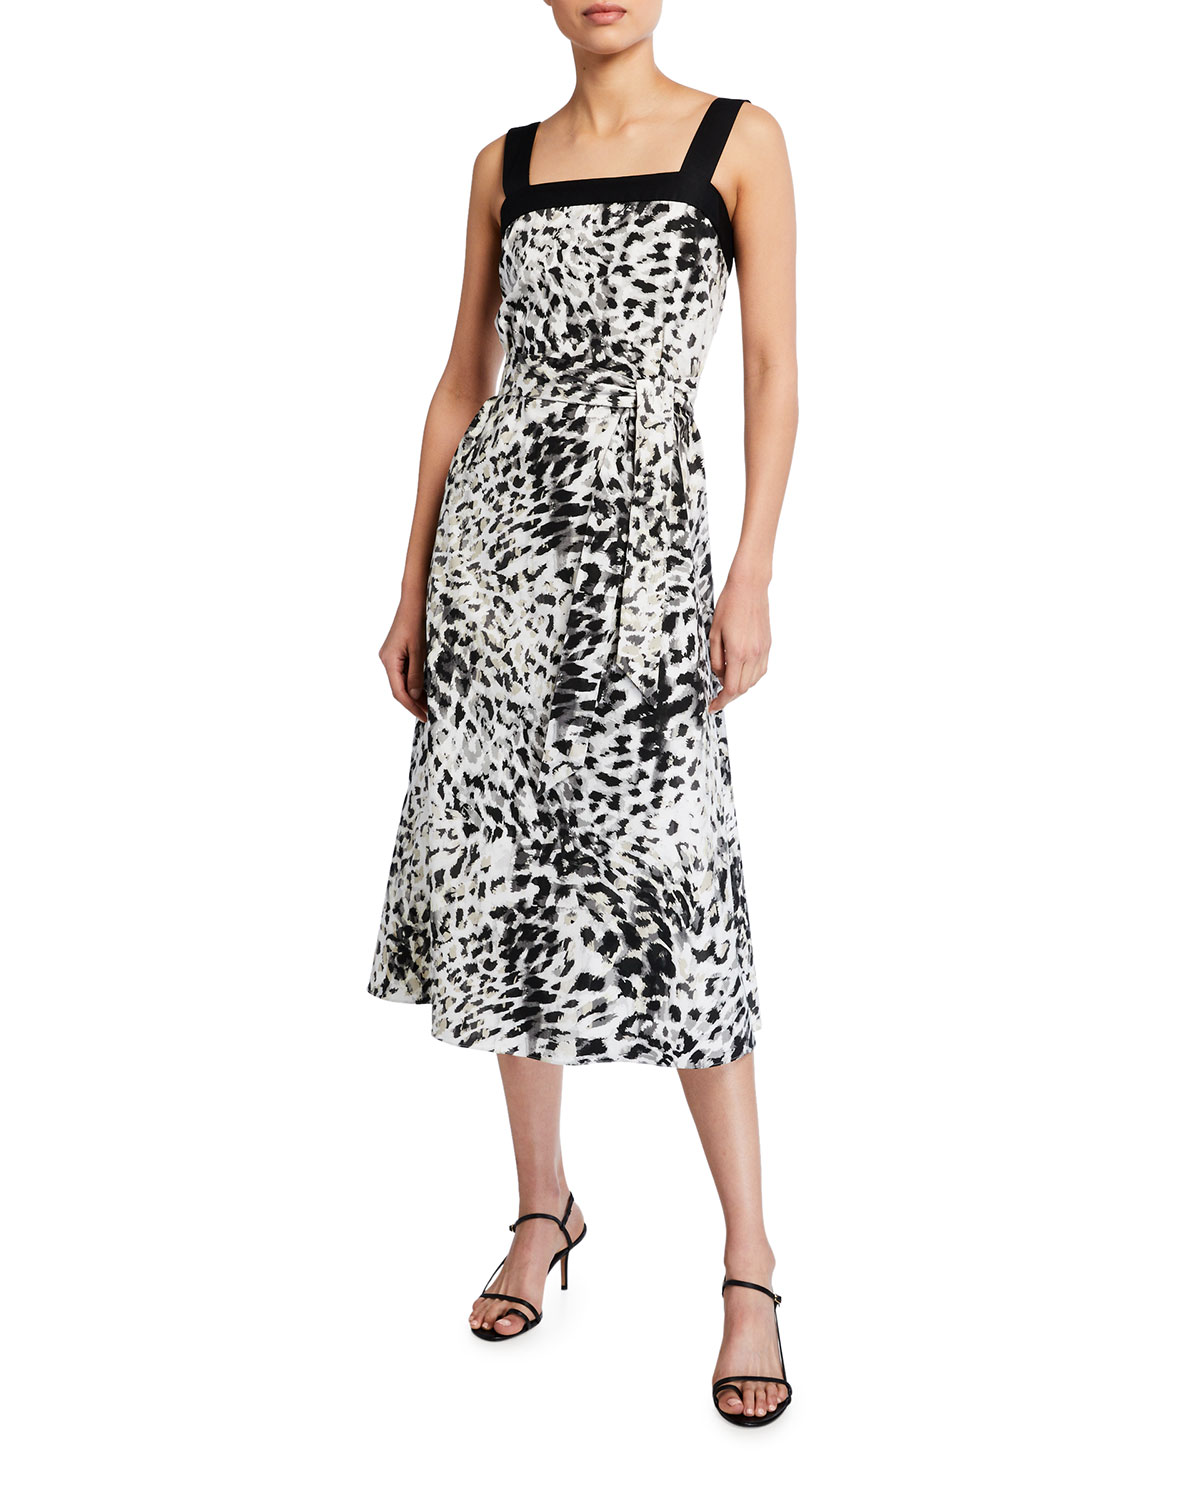 Natori Ombre Animal Print Cotton Poplin Midi Dress